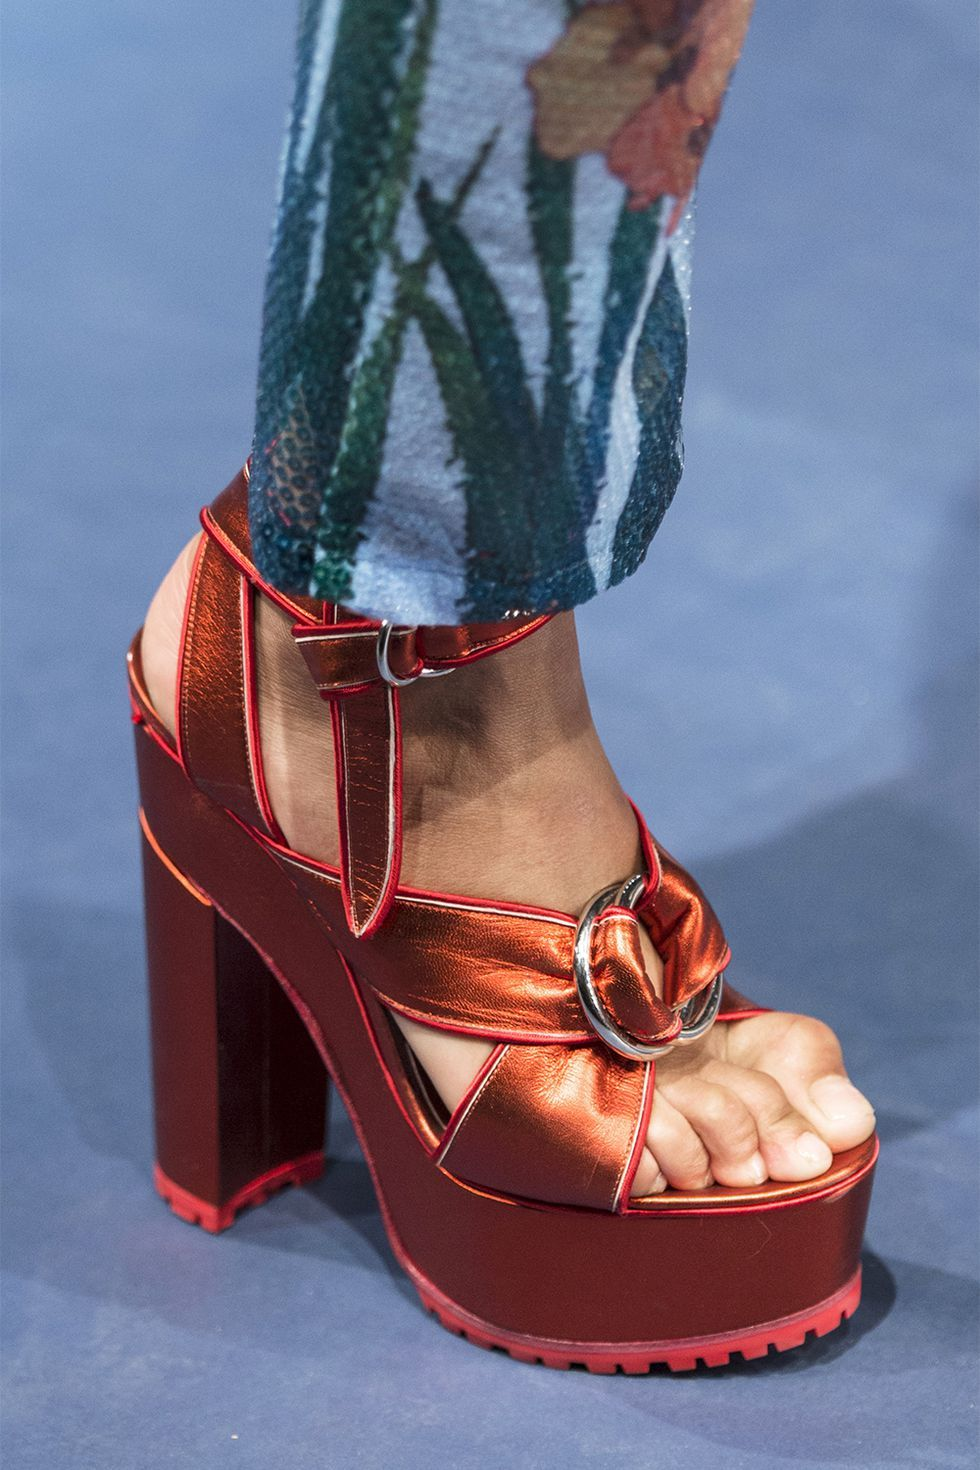 3ccac1fb1ad6 Spring 2018 Shoe Trends - Shoe Runway Trends Spring 2018